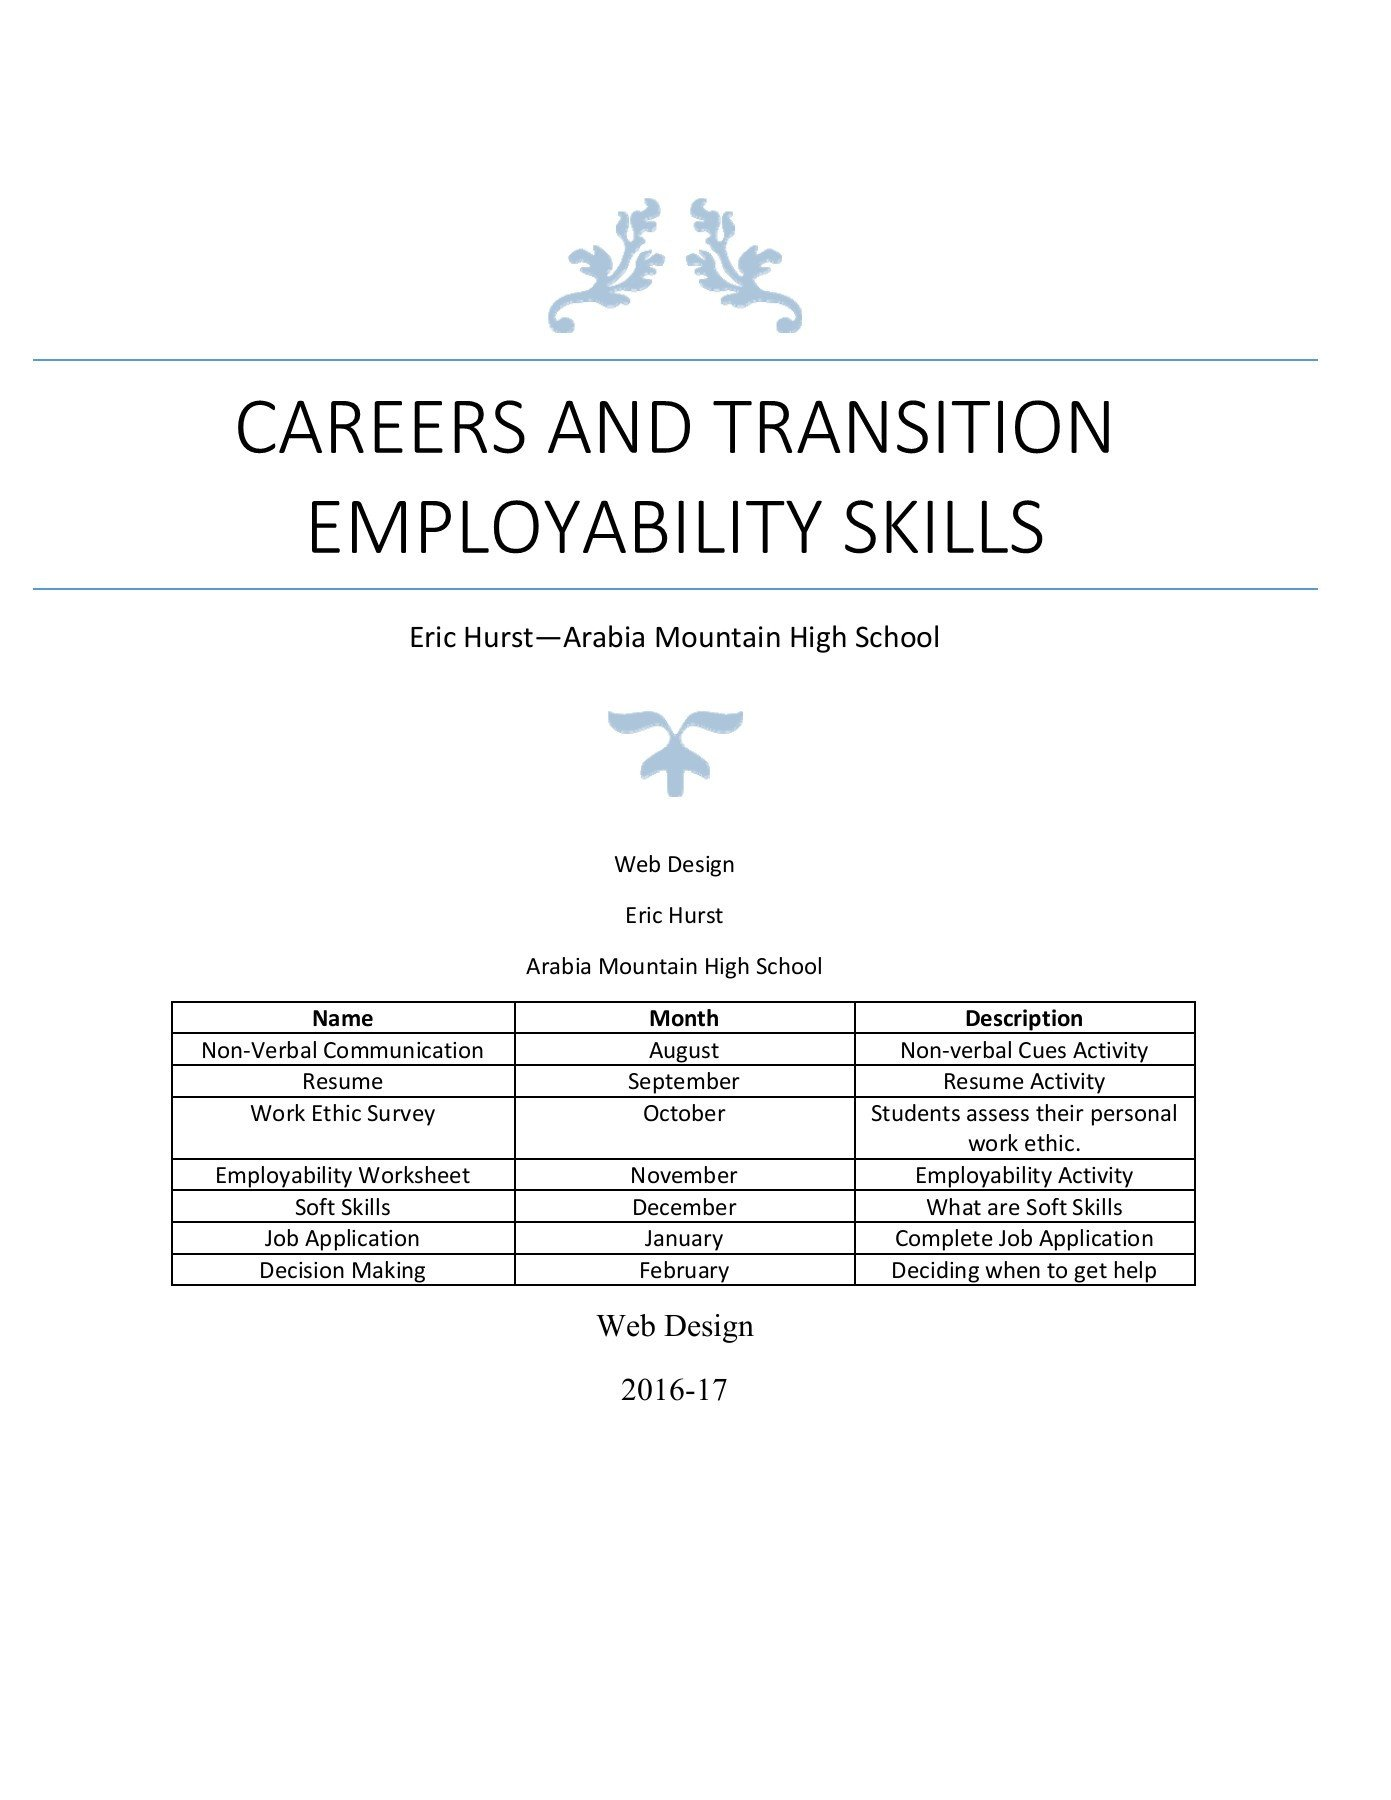 Job Skills Worksheets Employability Skills Web Design Text Version Anyflip